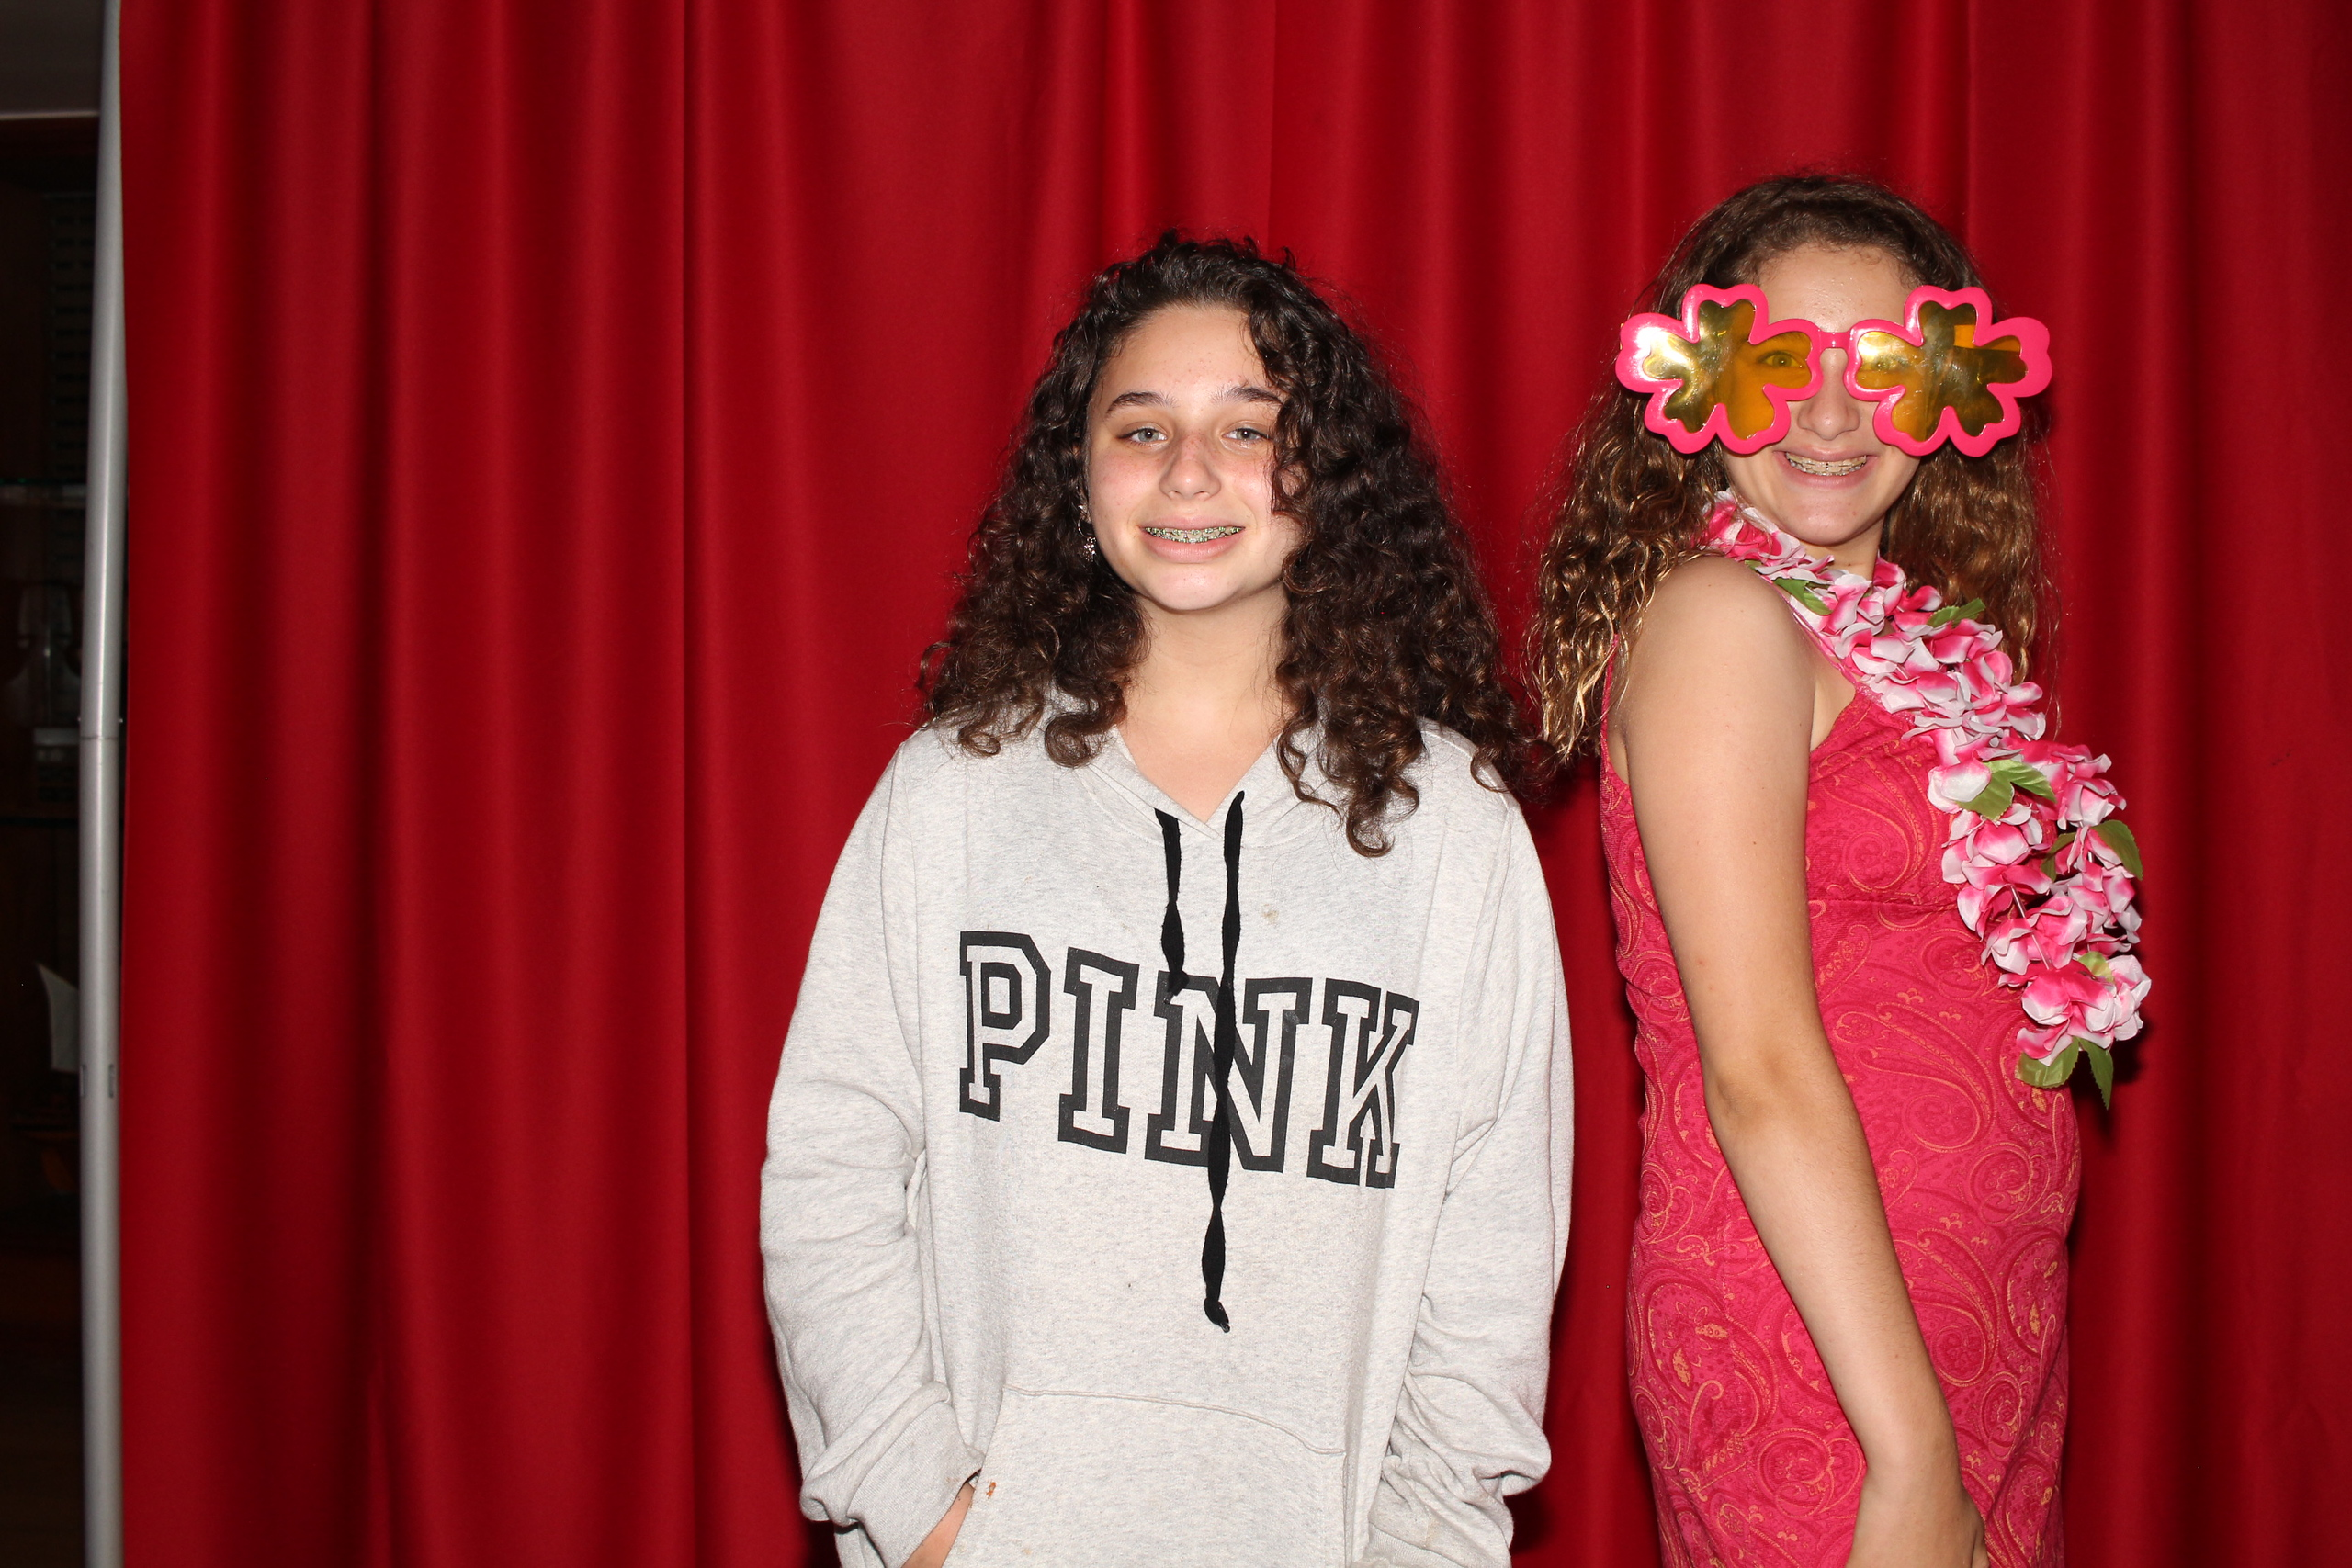 September 14, 2019 | Hailey's Bat Mitzvah